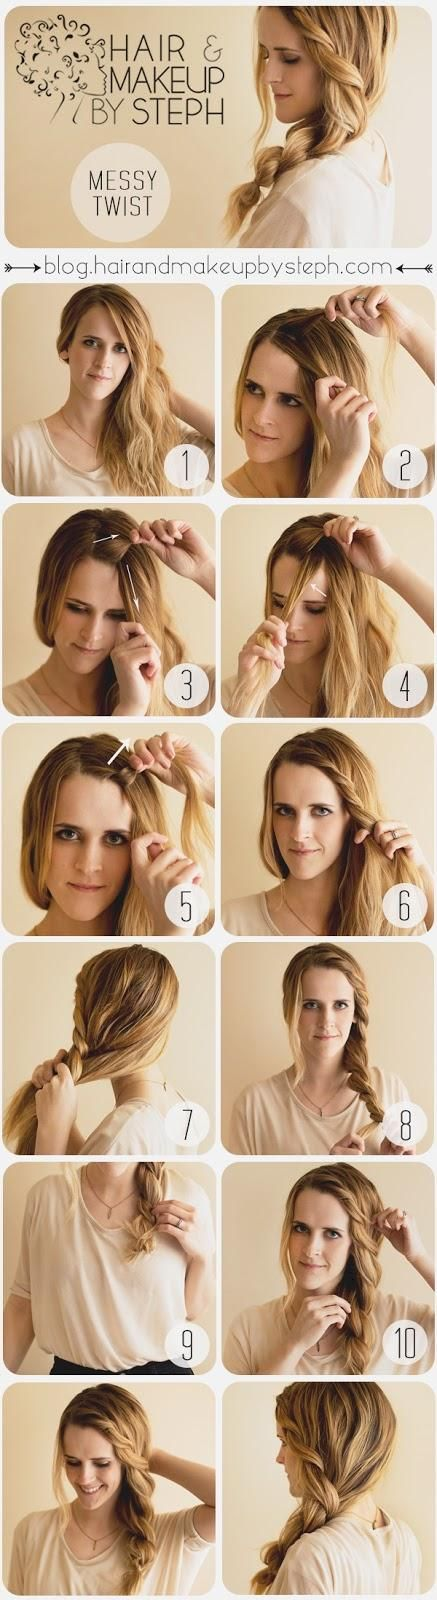 Easy hairstyle to try for summer : a messy twist #hair